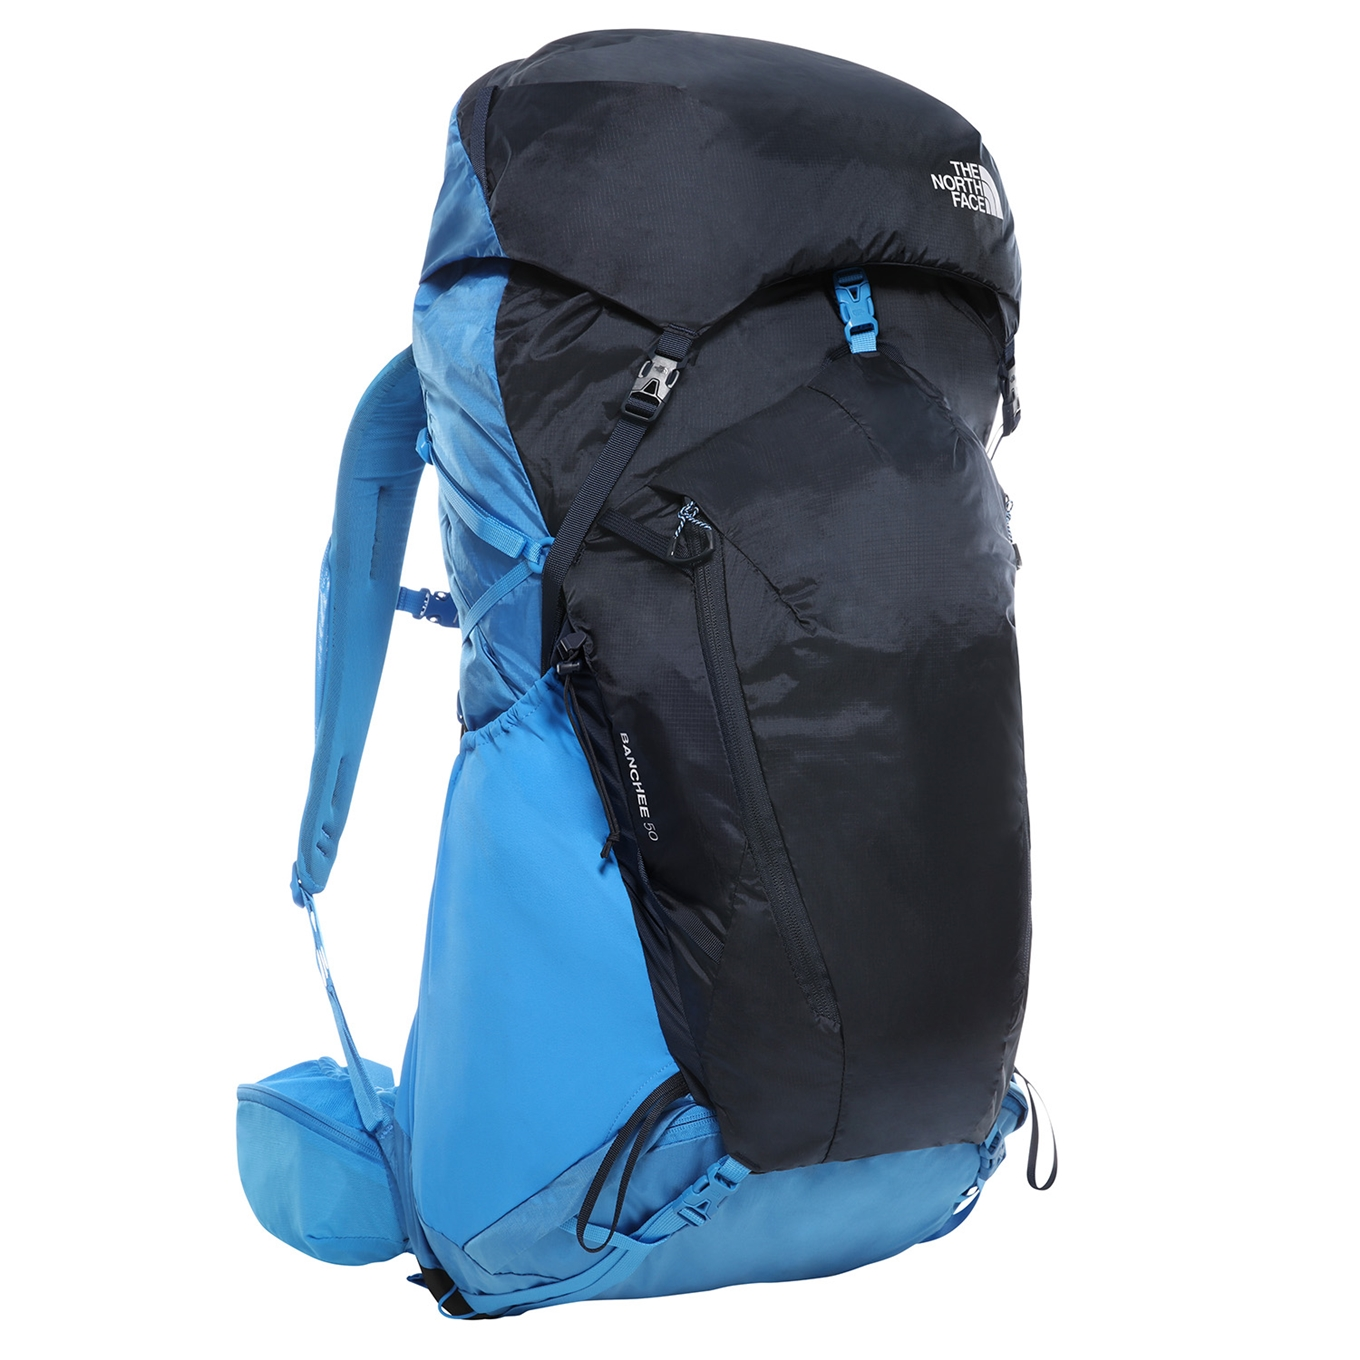 The North Face Banchee 65 Backpack S/M clear lake blue / urban navy backpack <br/></noscript><img class=